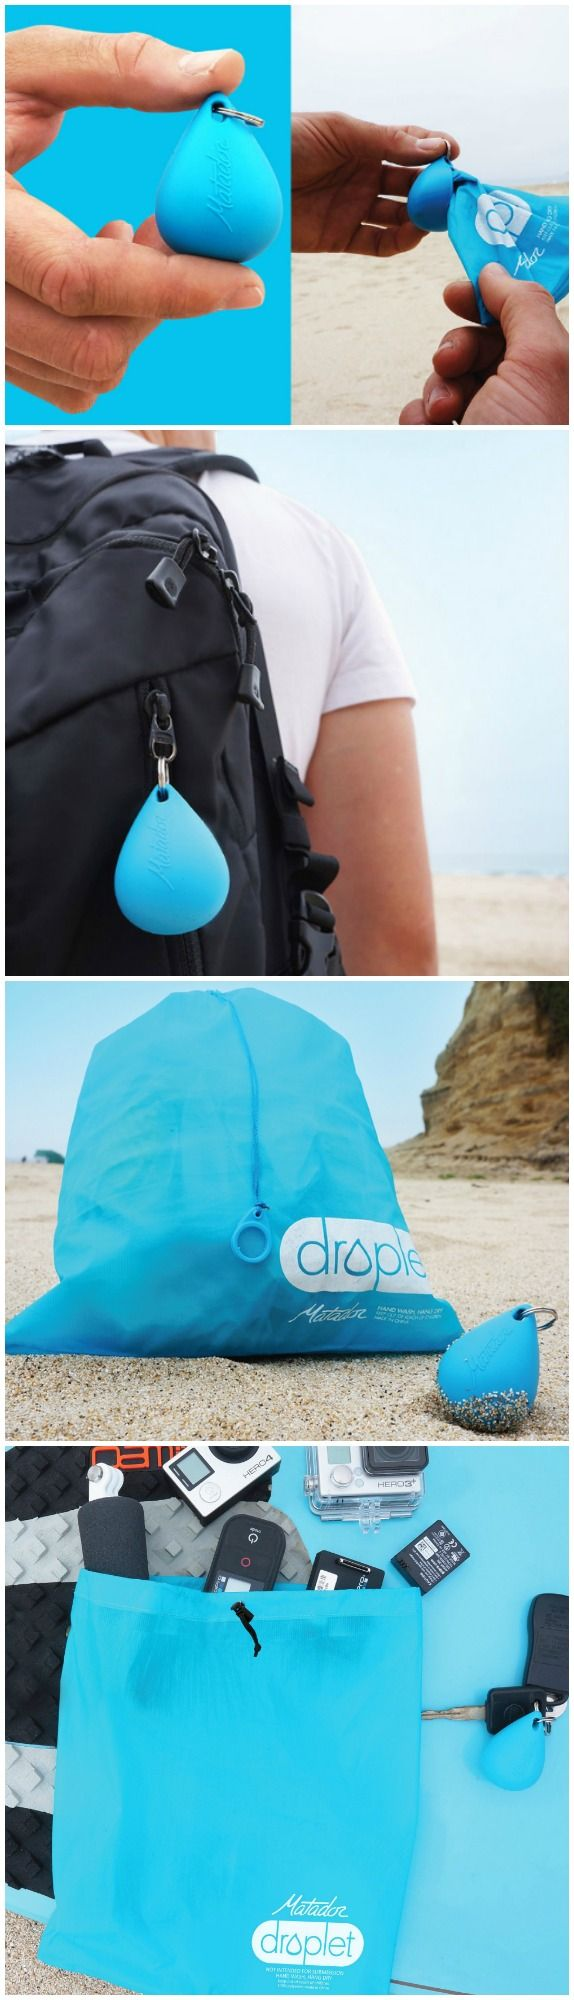 Matador Droplet Wet Bag. Compact enough to fit on a keychain and large enough for a whole outfit. Your sweaty gym clothes and wet swim suits are no match.